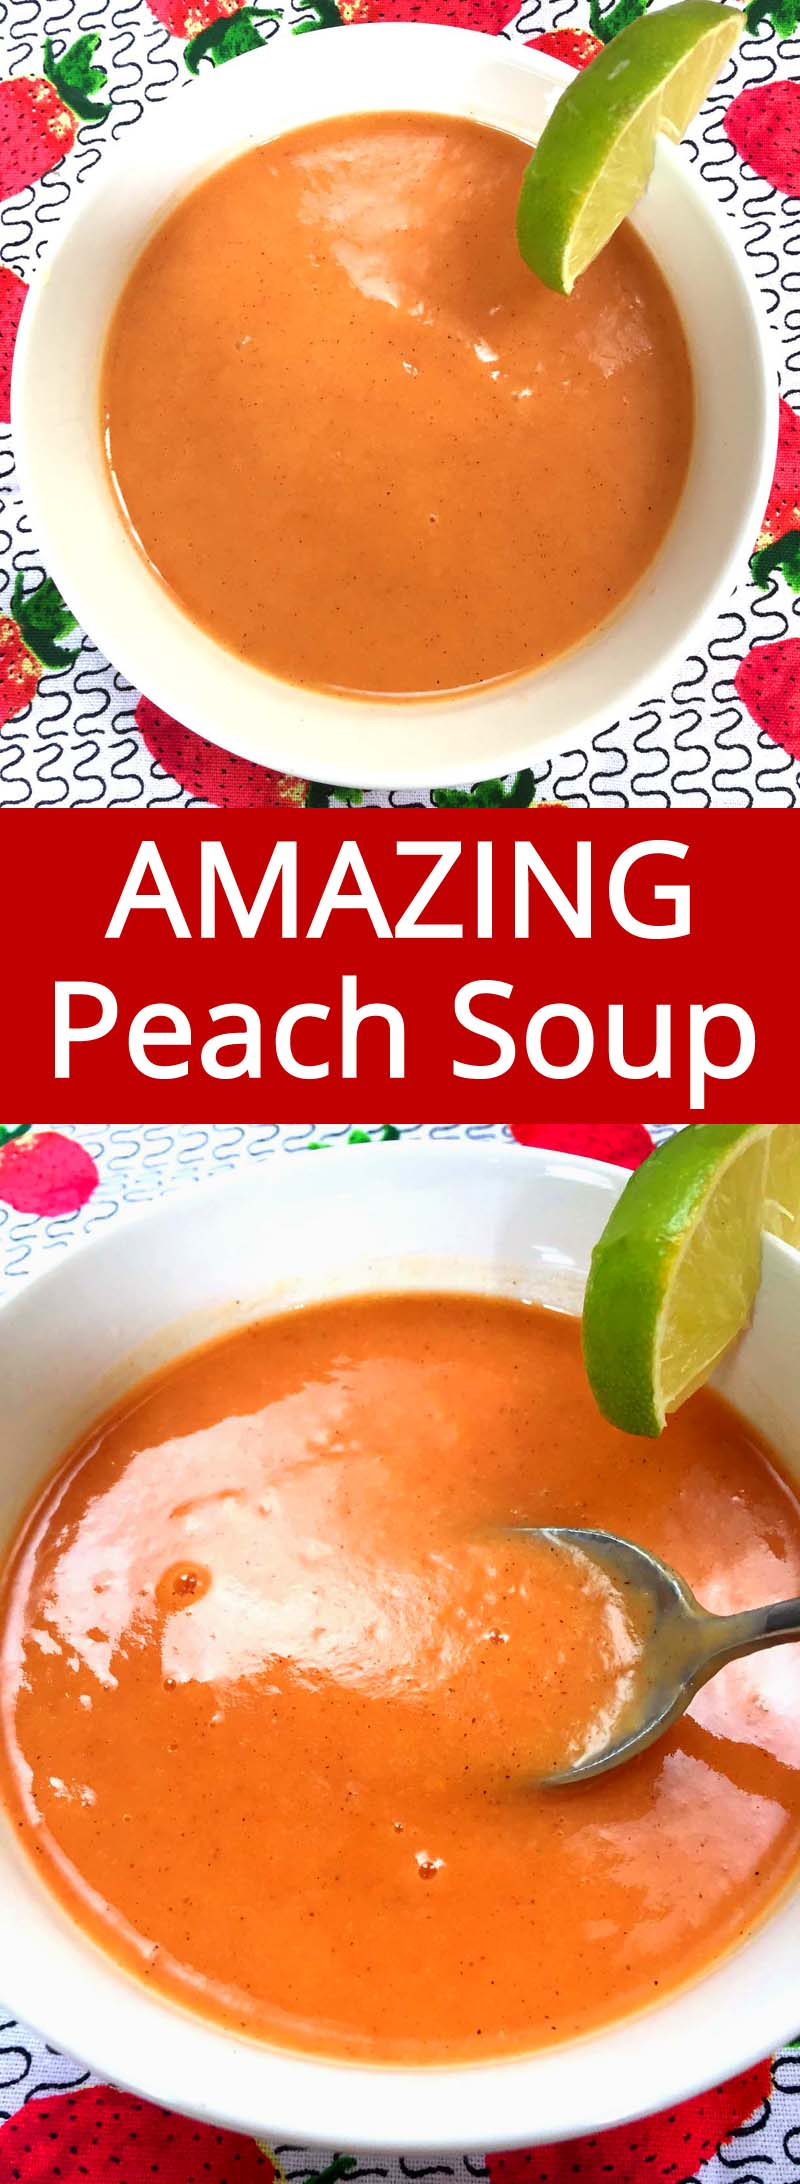 This chilled peach soup is simply amazing! Super easy to make and tastes so good! Perfect for a hot summer day!